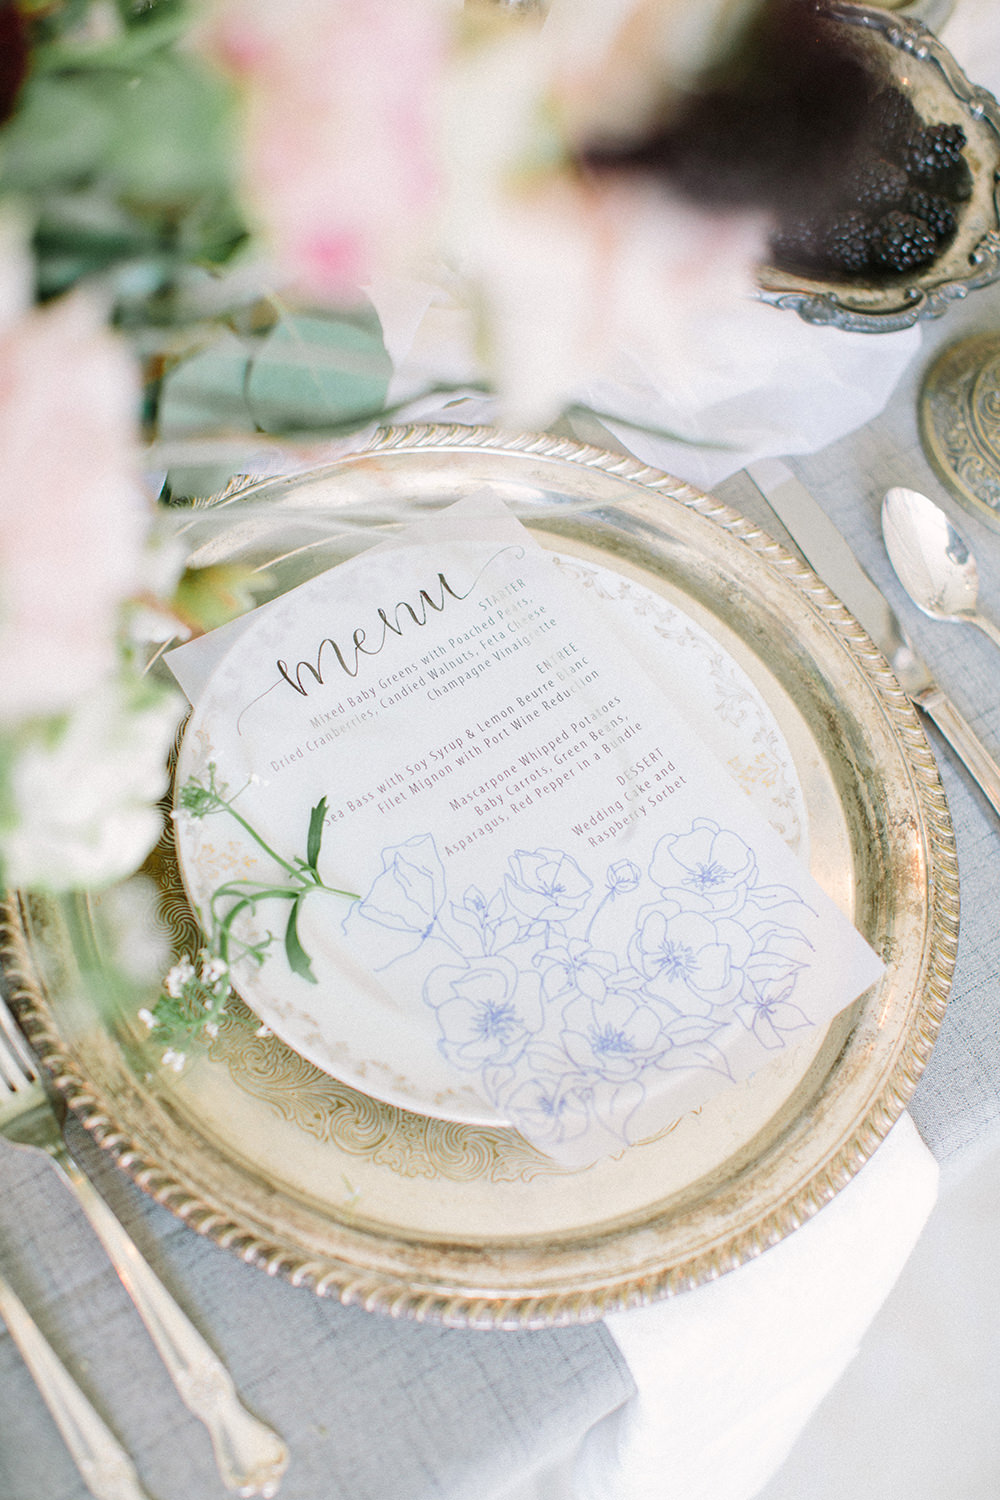 place settings - photo by Erica J Photography https://ruffledblog.com/old-world-wedding-editorial-at-vizcaya-museum